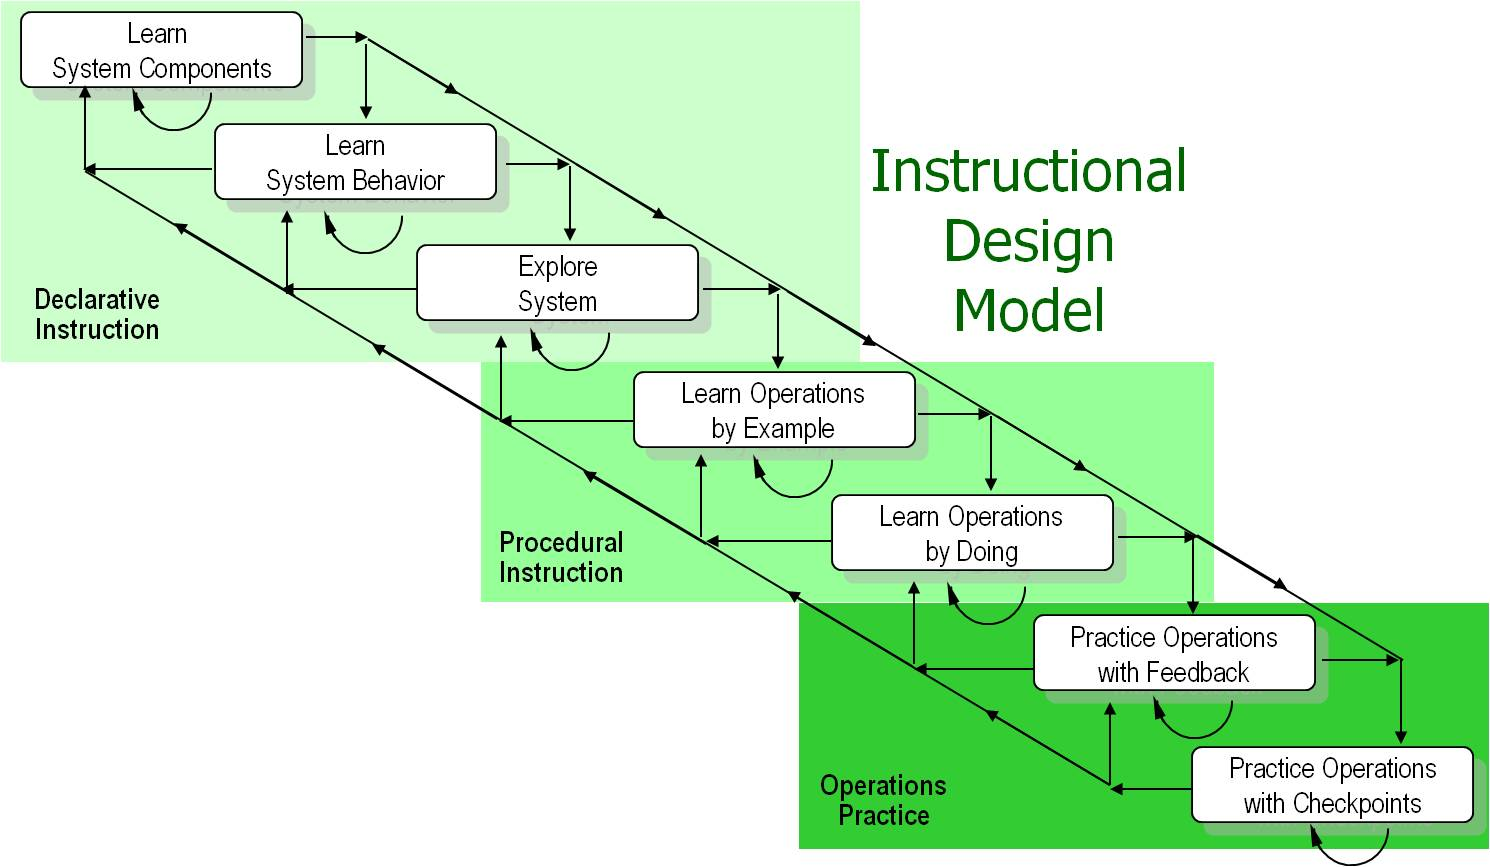 Operator training instructional design model.